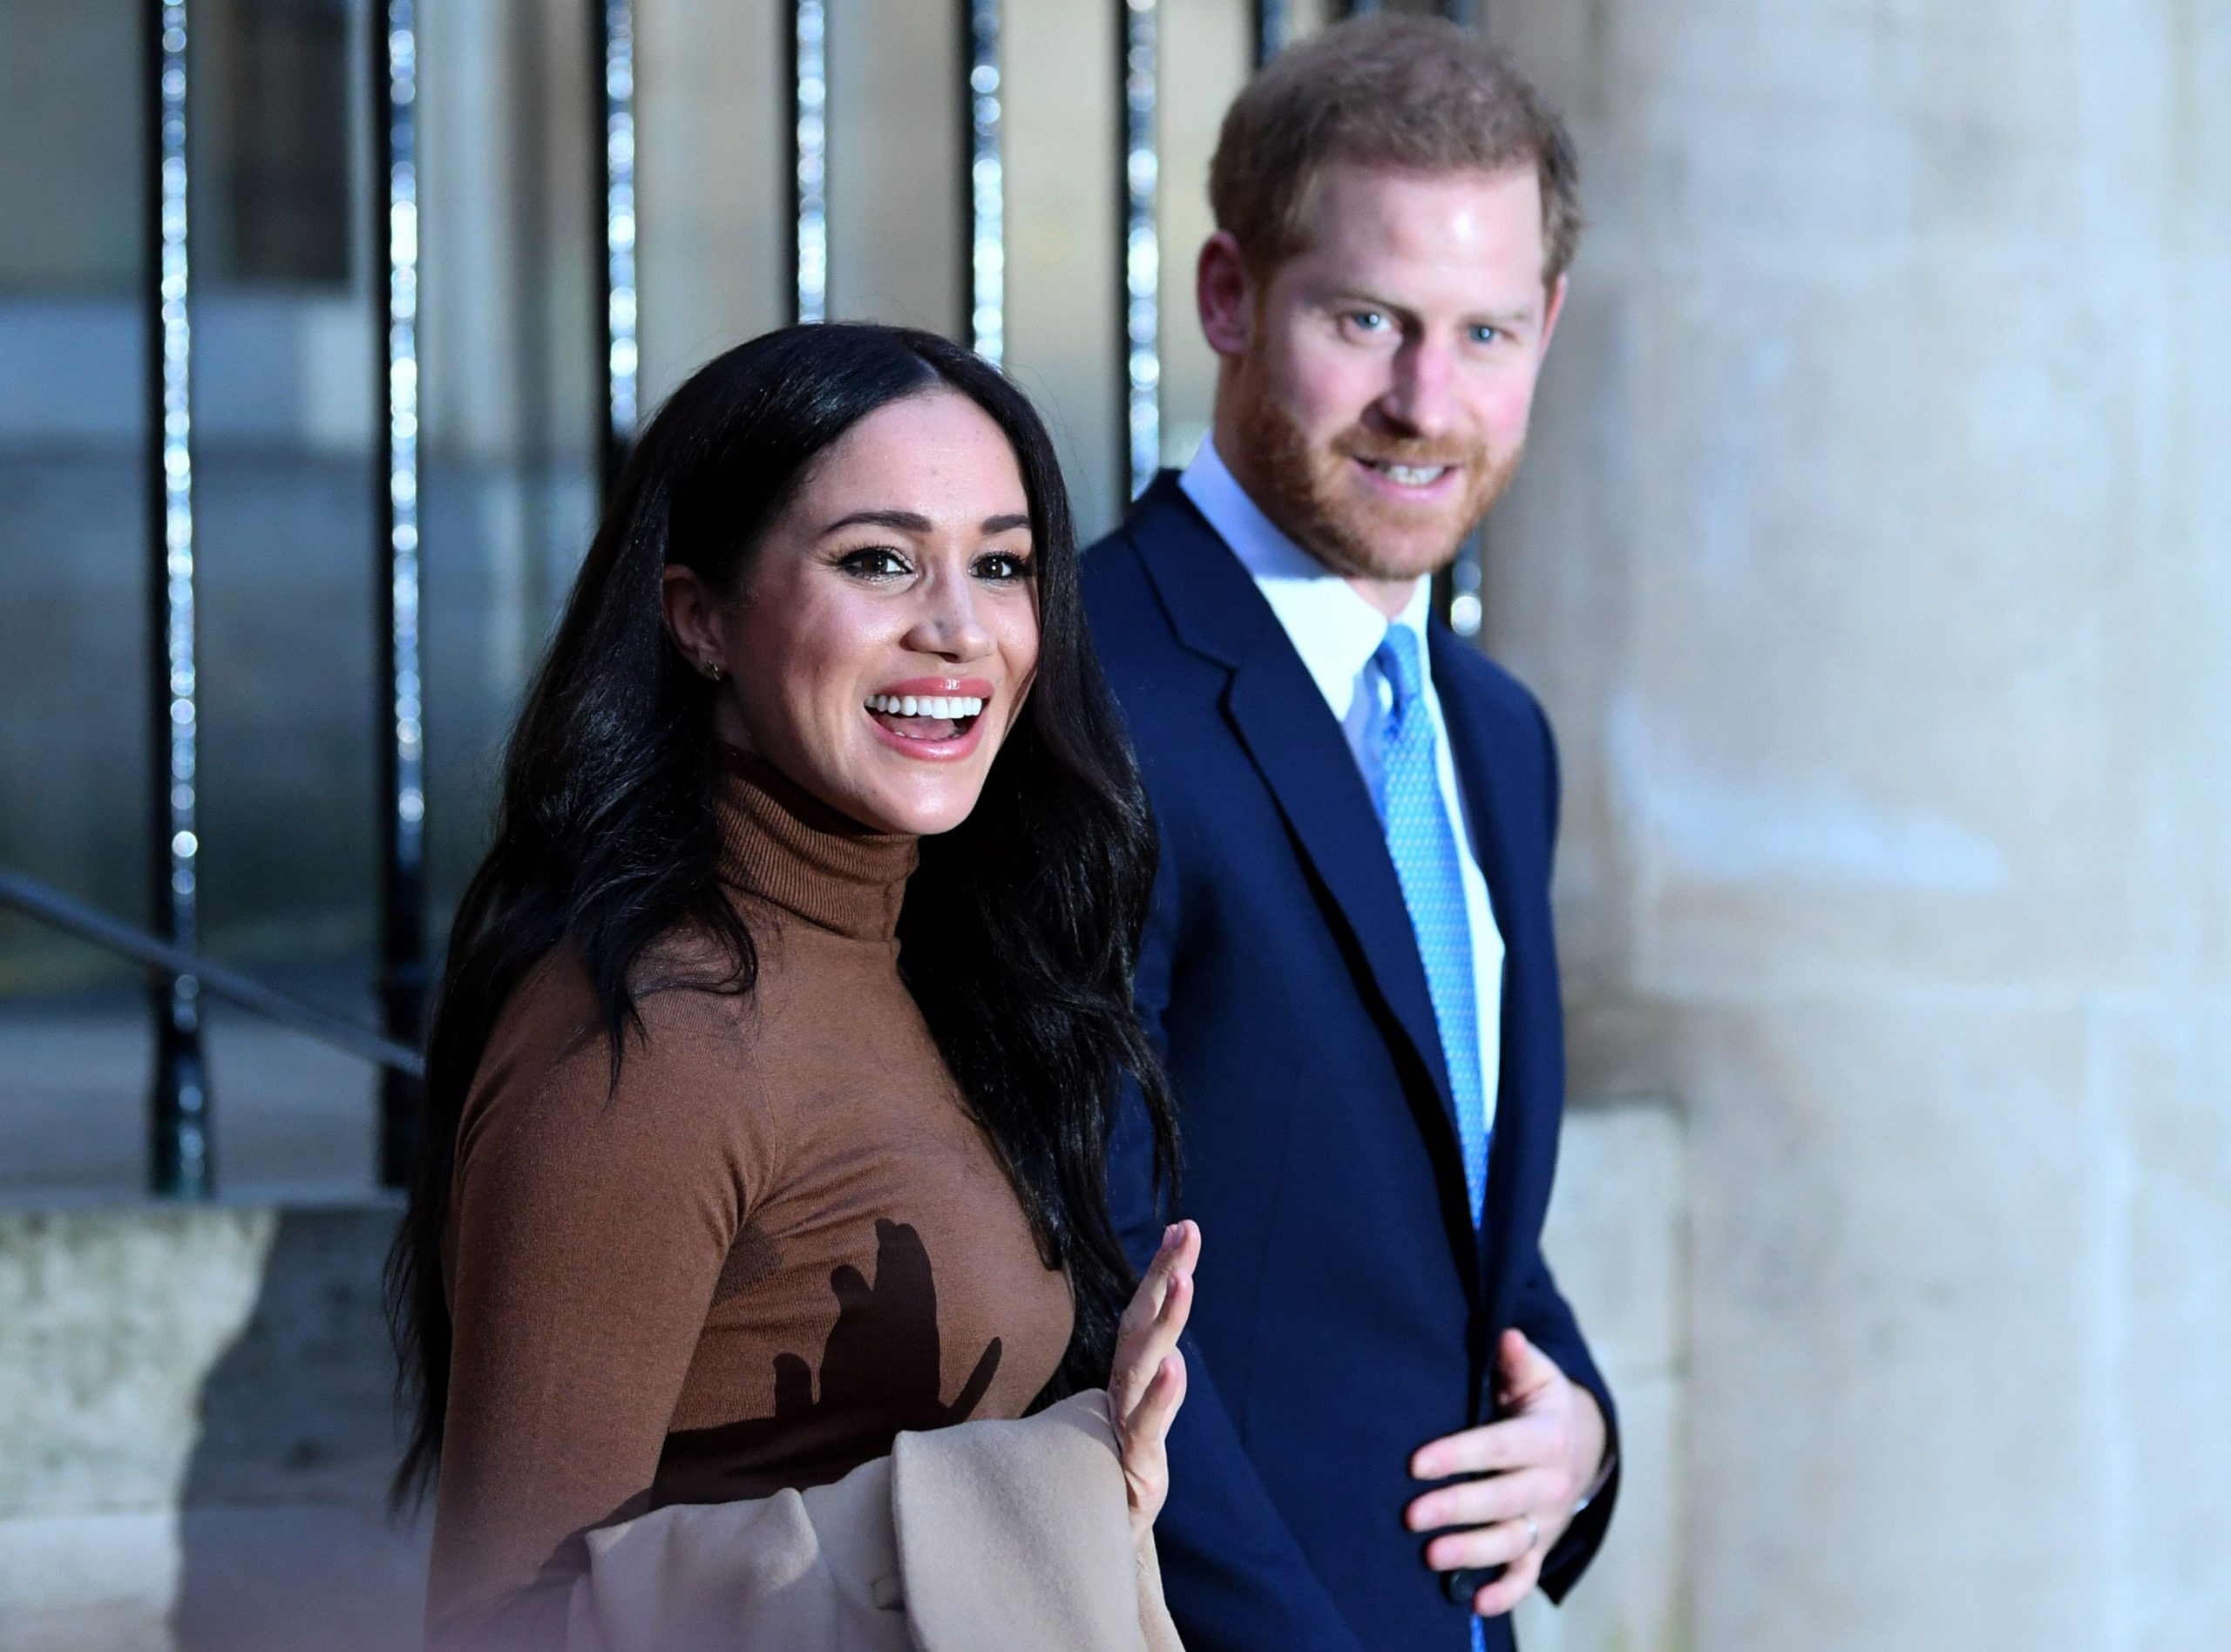 Prince Harry and Meghan Markle say they are taking a step back as 'senior' members of the royal family